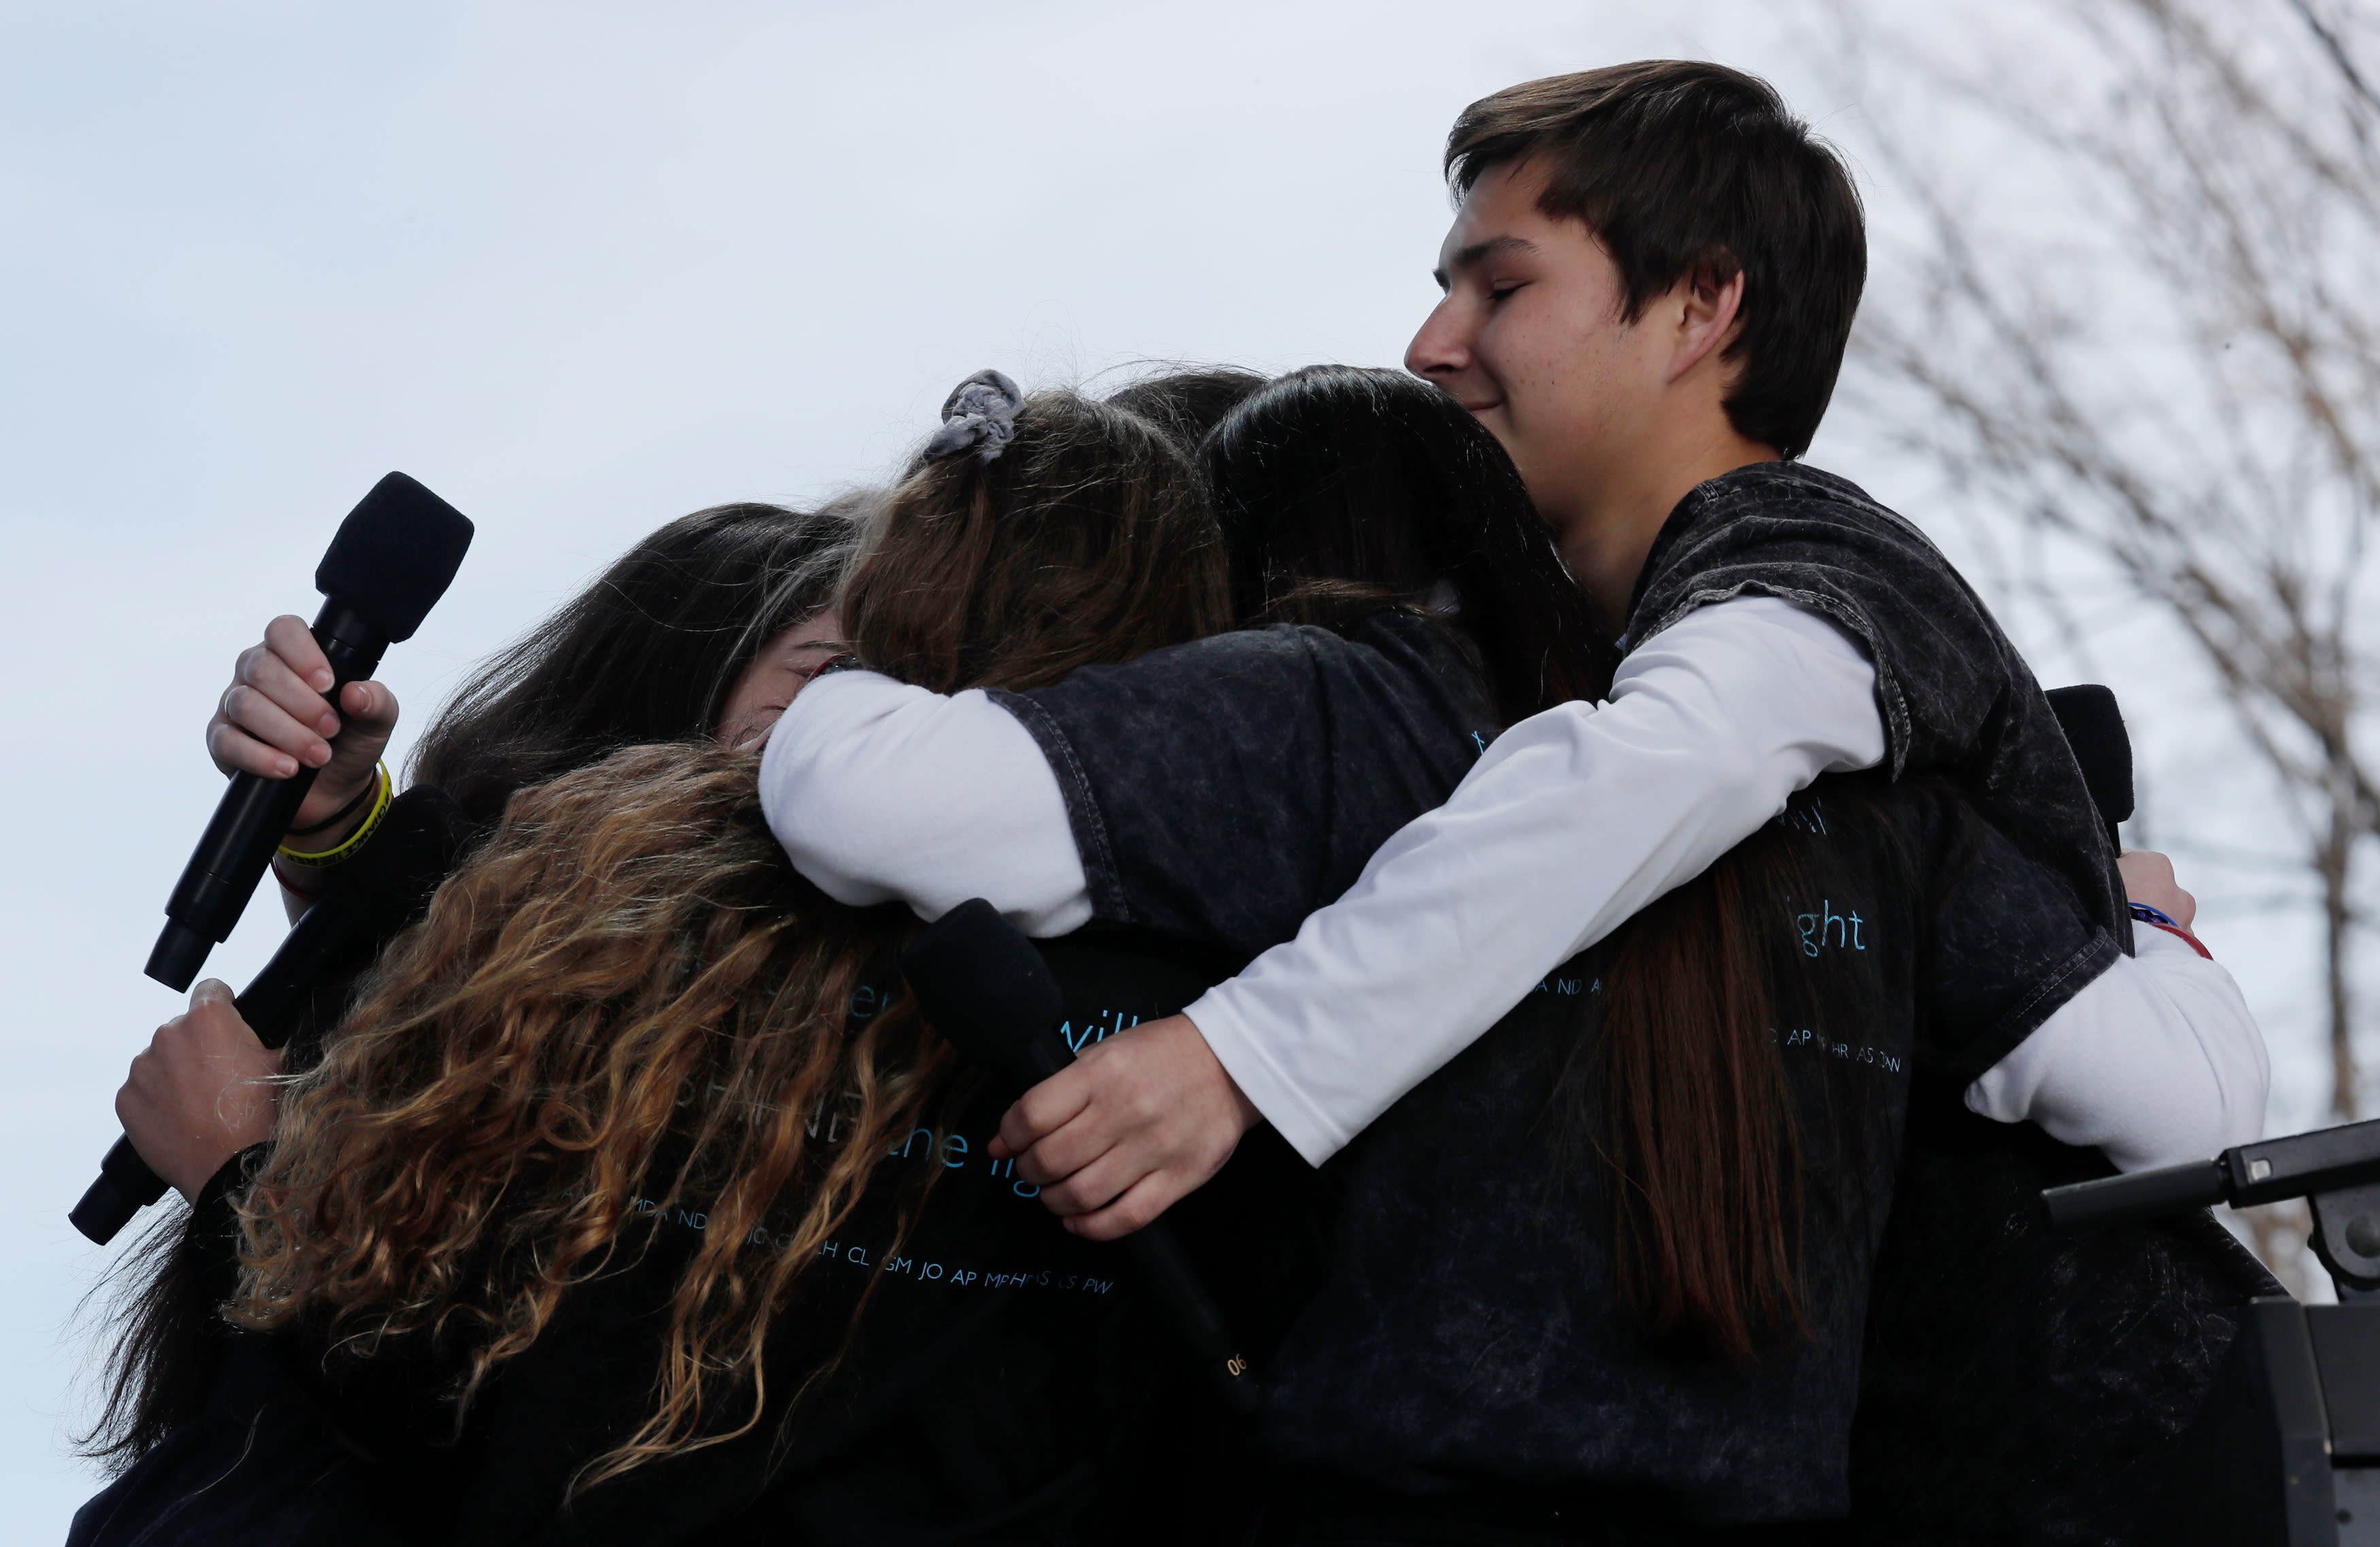 """<p>Students and school shooting survivors embrace at the conclusion of the """"March for Our Lives"""" event demanding gun control after recent school shootings at a rally in Washington, U.S., March 24, 2018. (Jonathan Ernst/Reuters) </p>"""